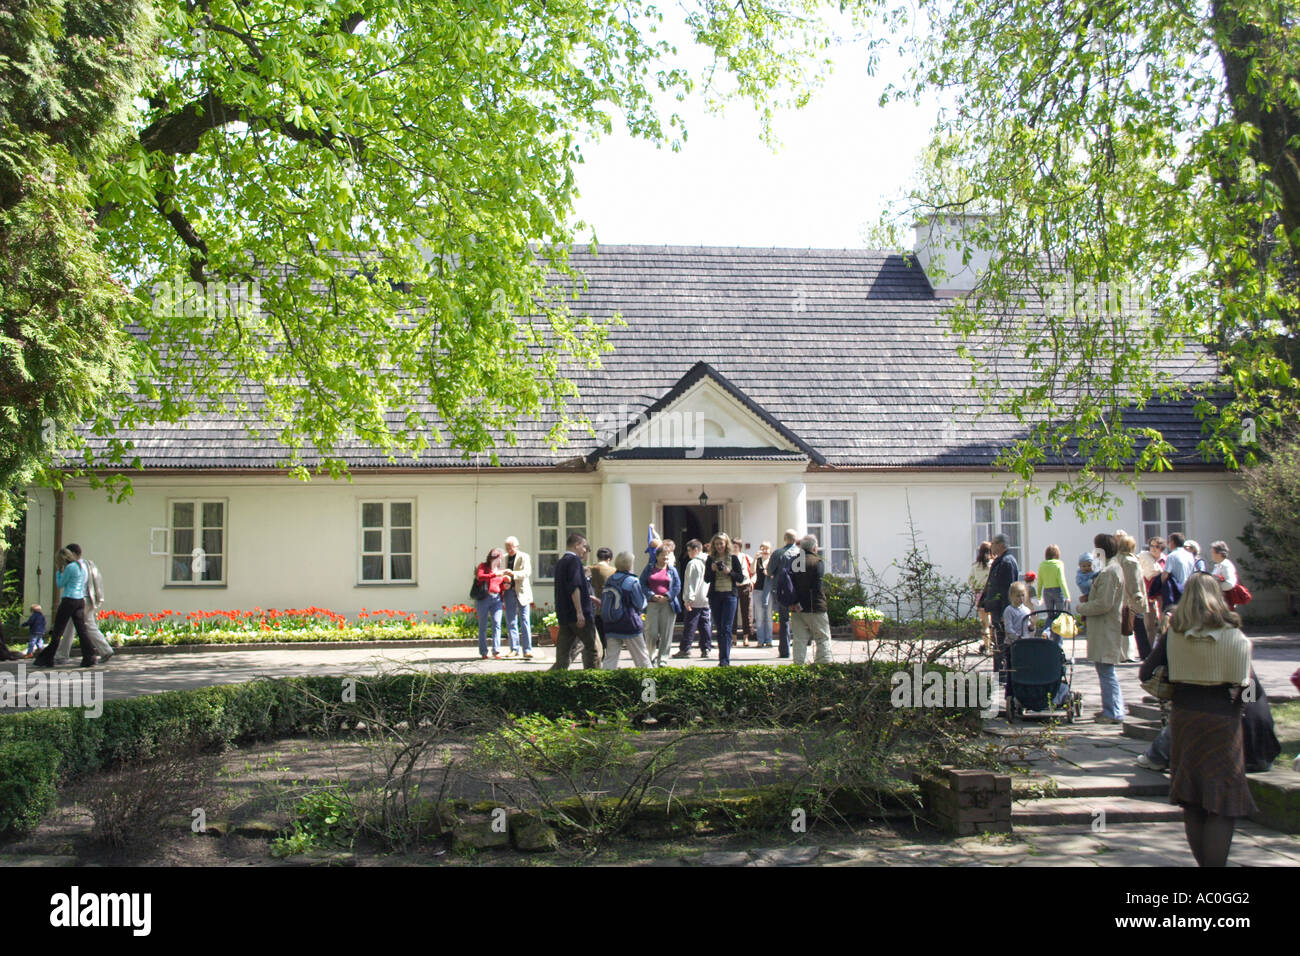 People in Zelazowa Wola, Frederic Chopin's birthplace, Poland - Stock Image